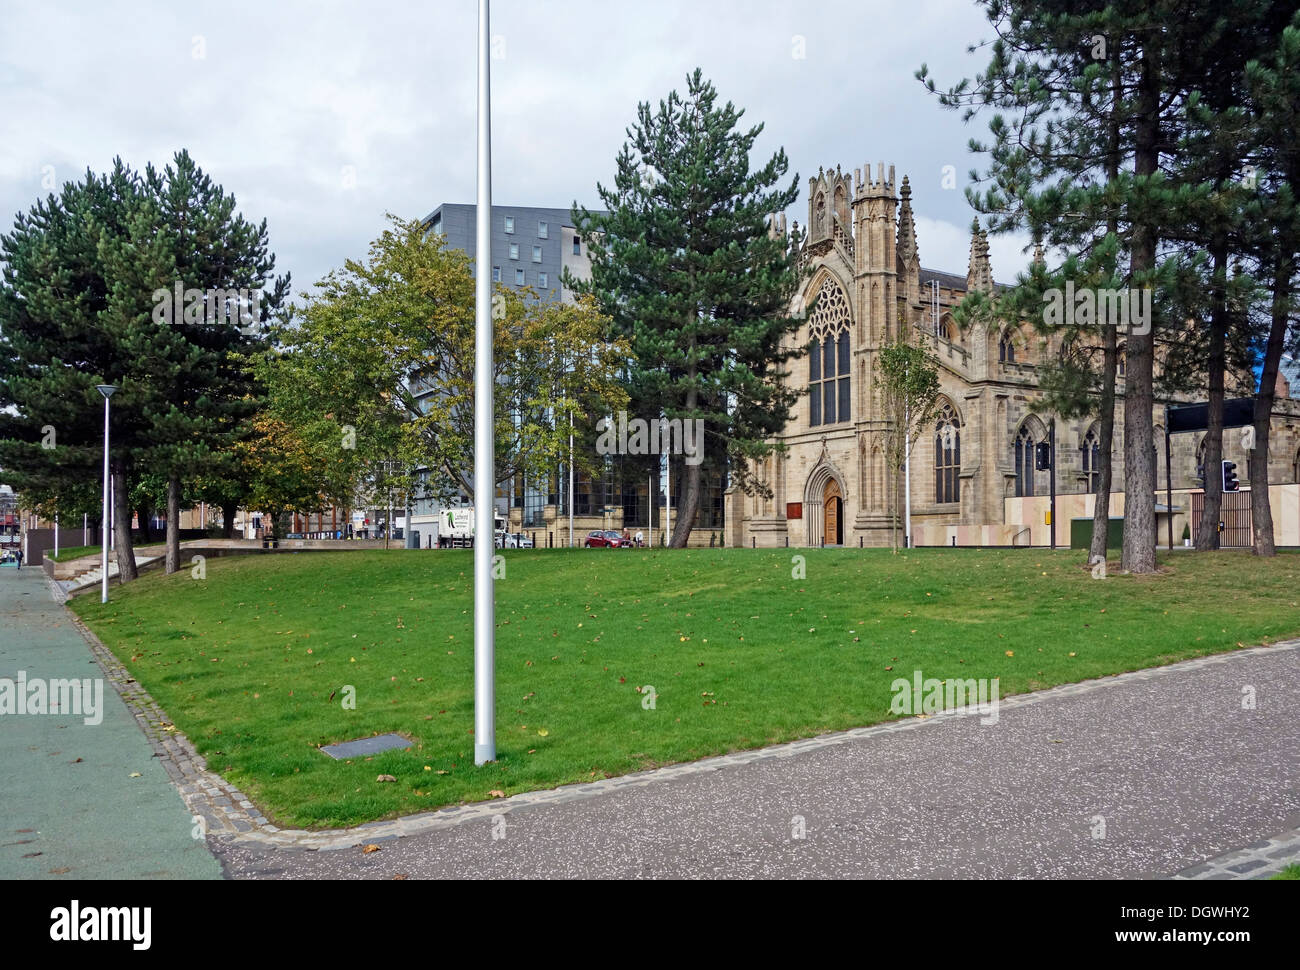 Part of the Customs House Quay Gardens Public Realm improvements scheme along River Clyde in Central Glasgow Scotland - Stock Image